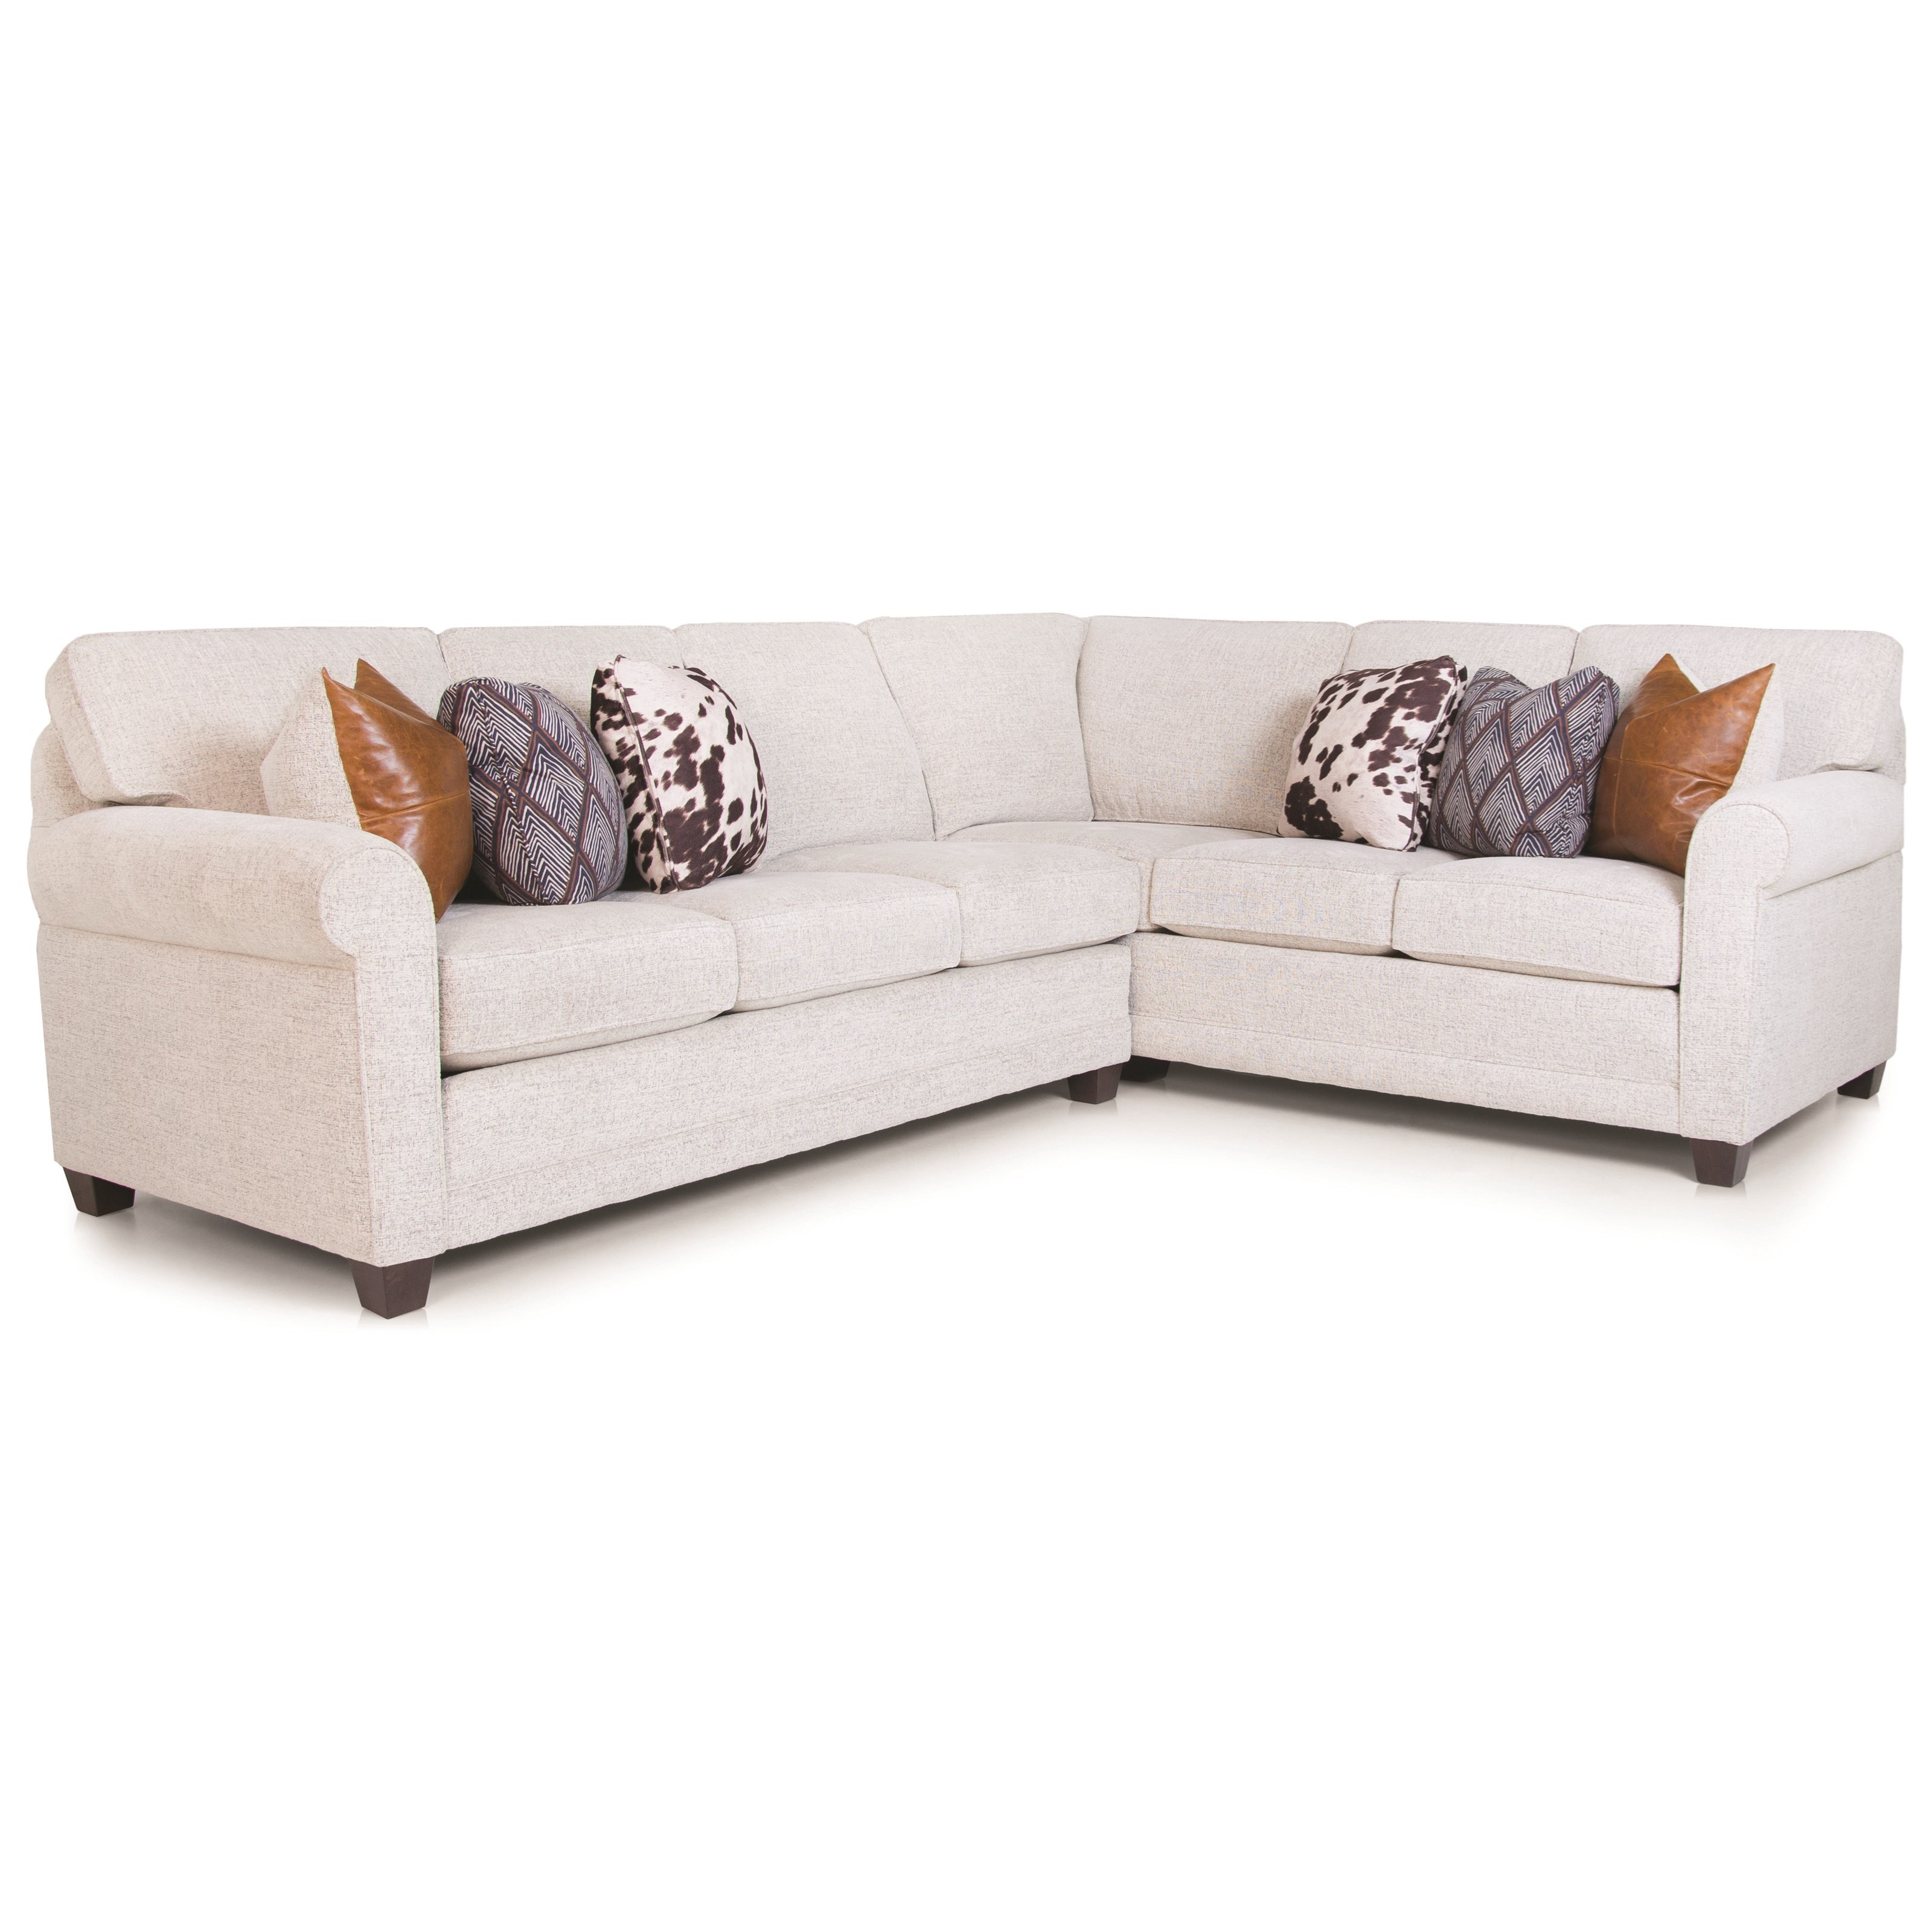 366 2-pc Sectional by Smith Brothers at Saugerties Furniture Mart